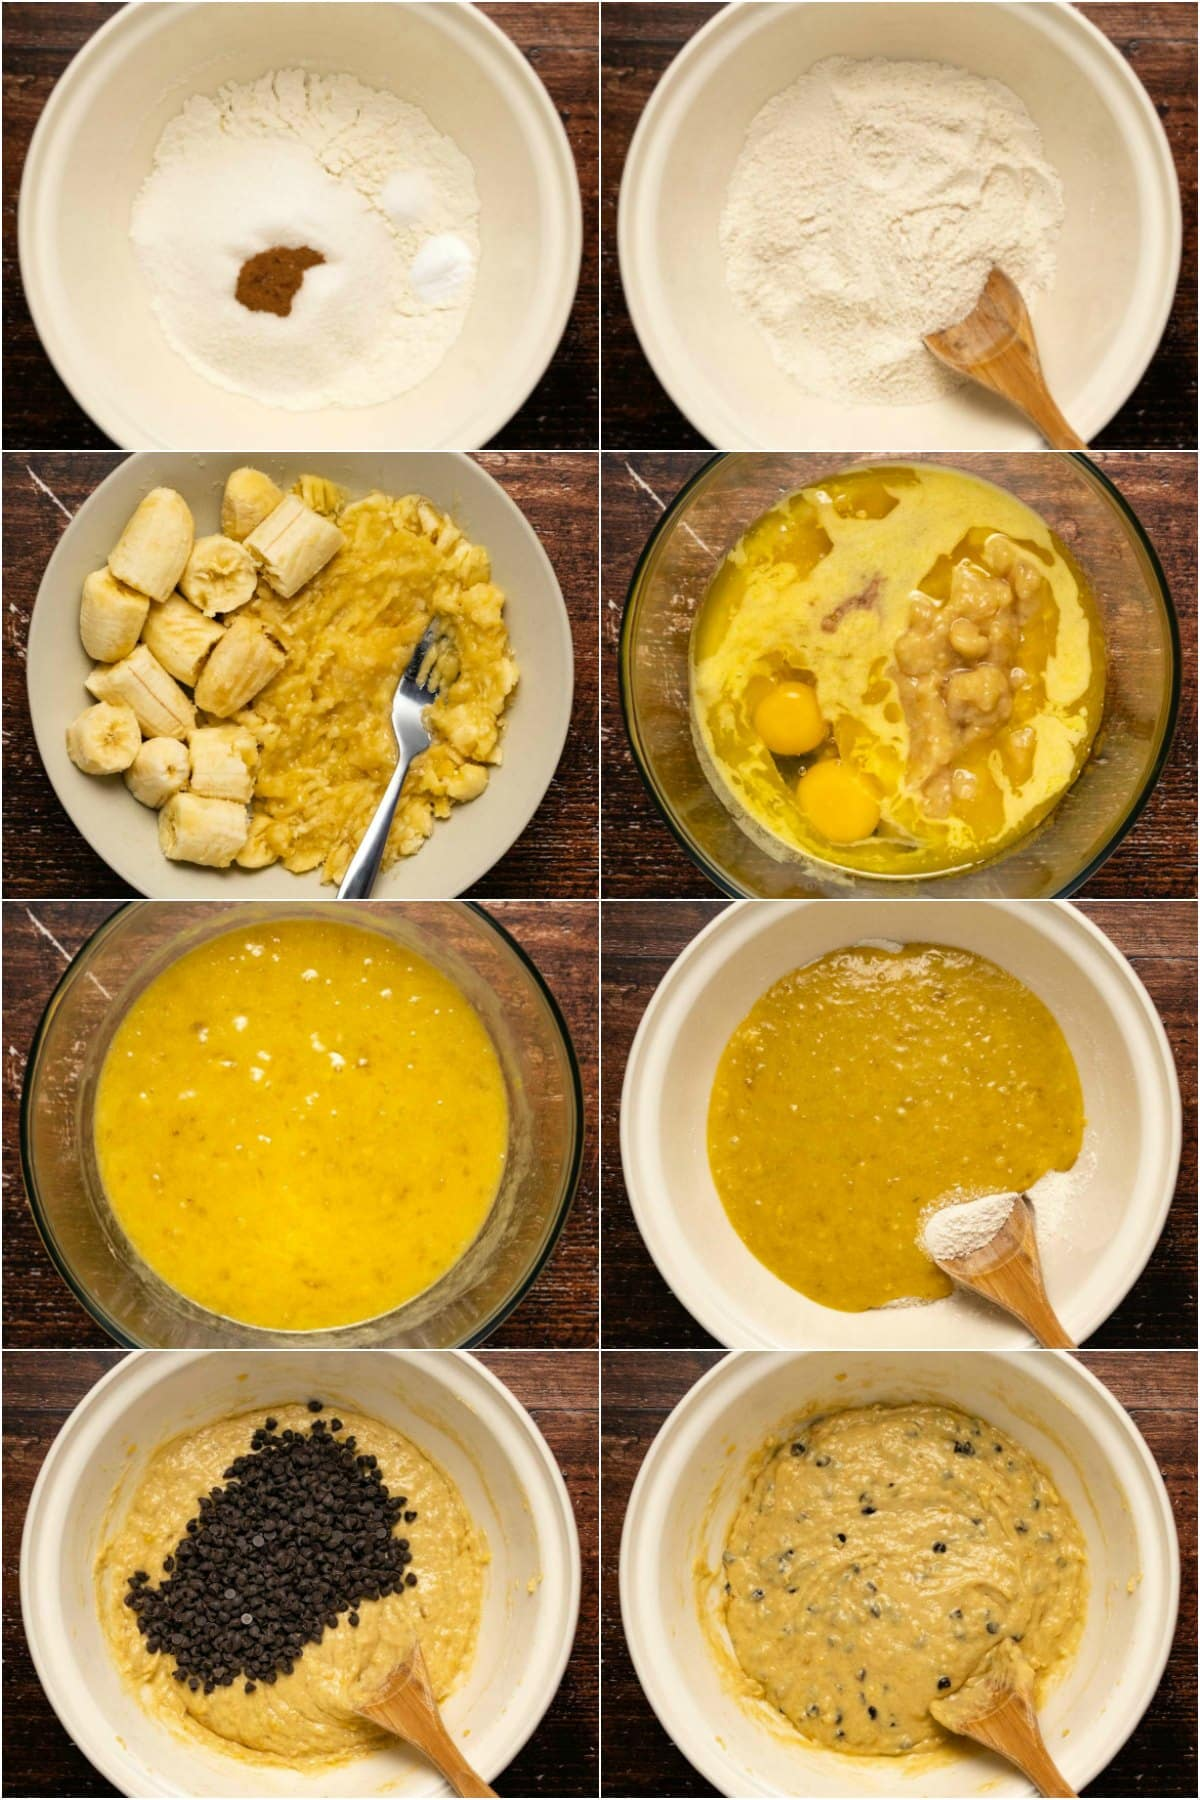 Step by step process photo collage of making the batter for chocolate chip banana bread.